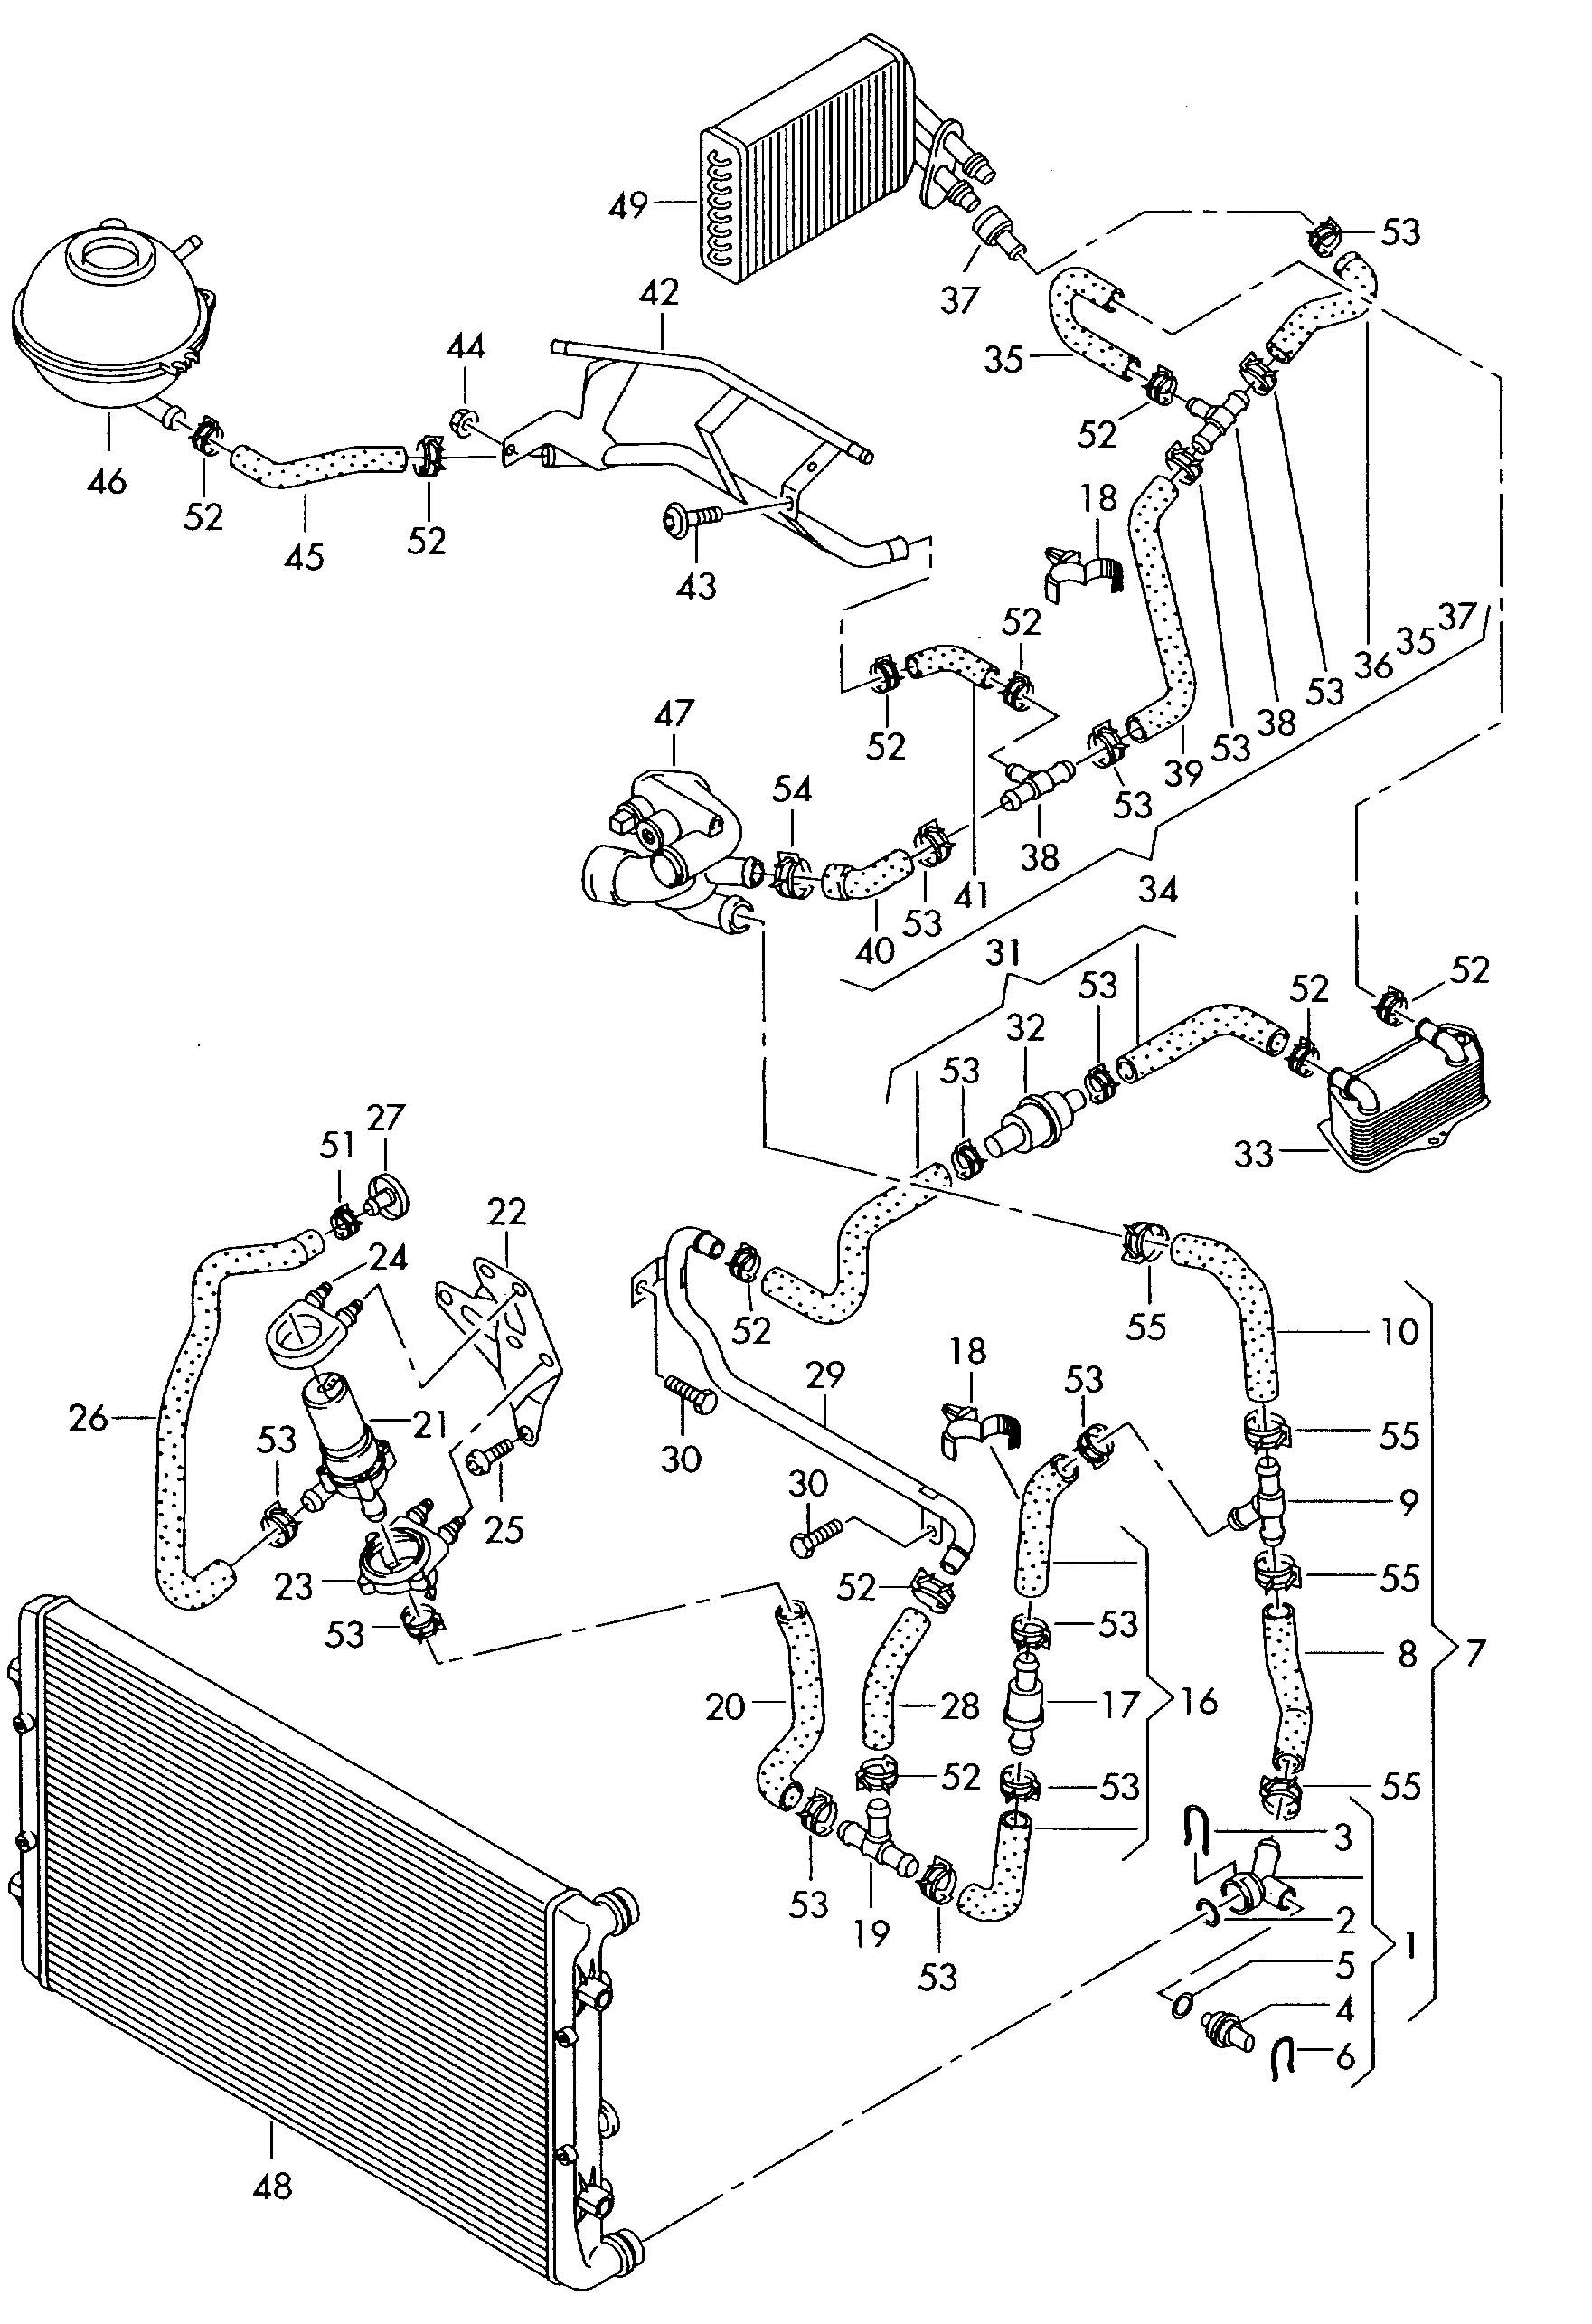 2007 audi a4 engine diagram